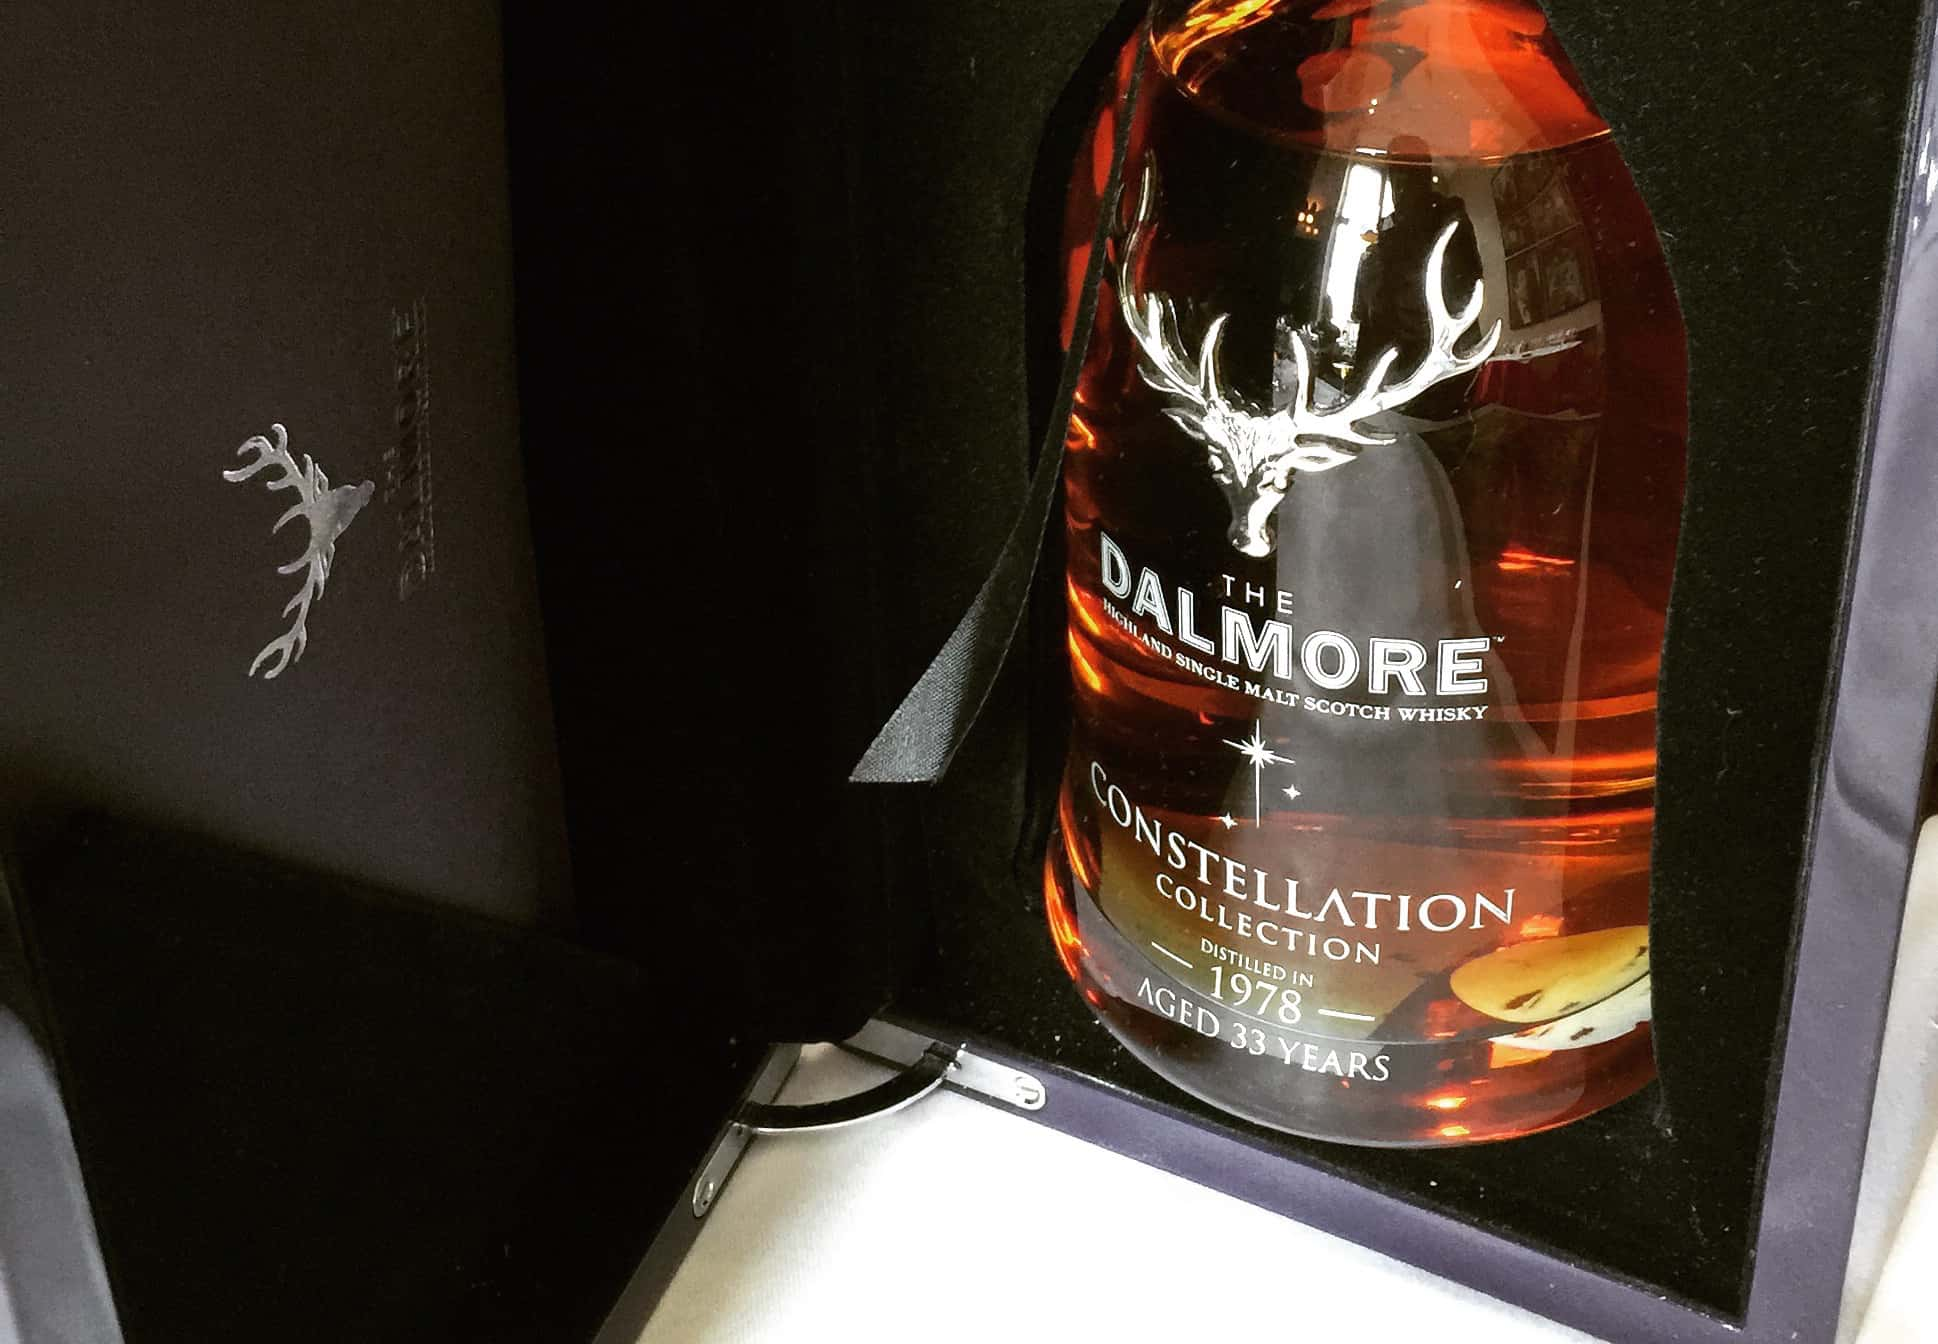 Dalmore Constellation 1978